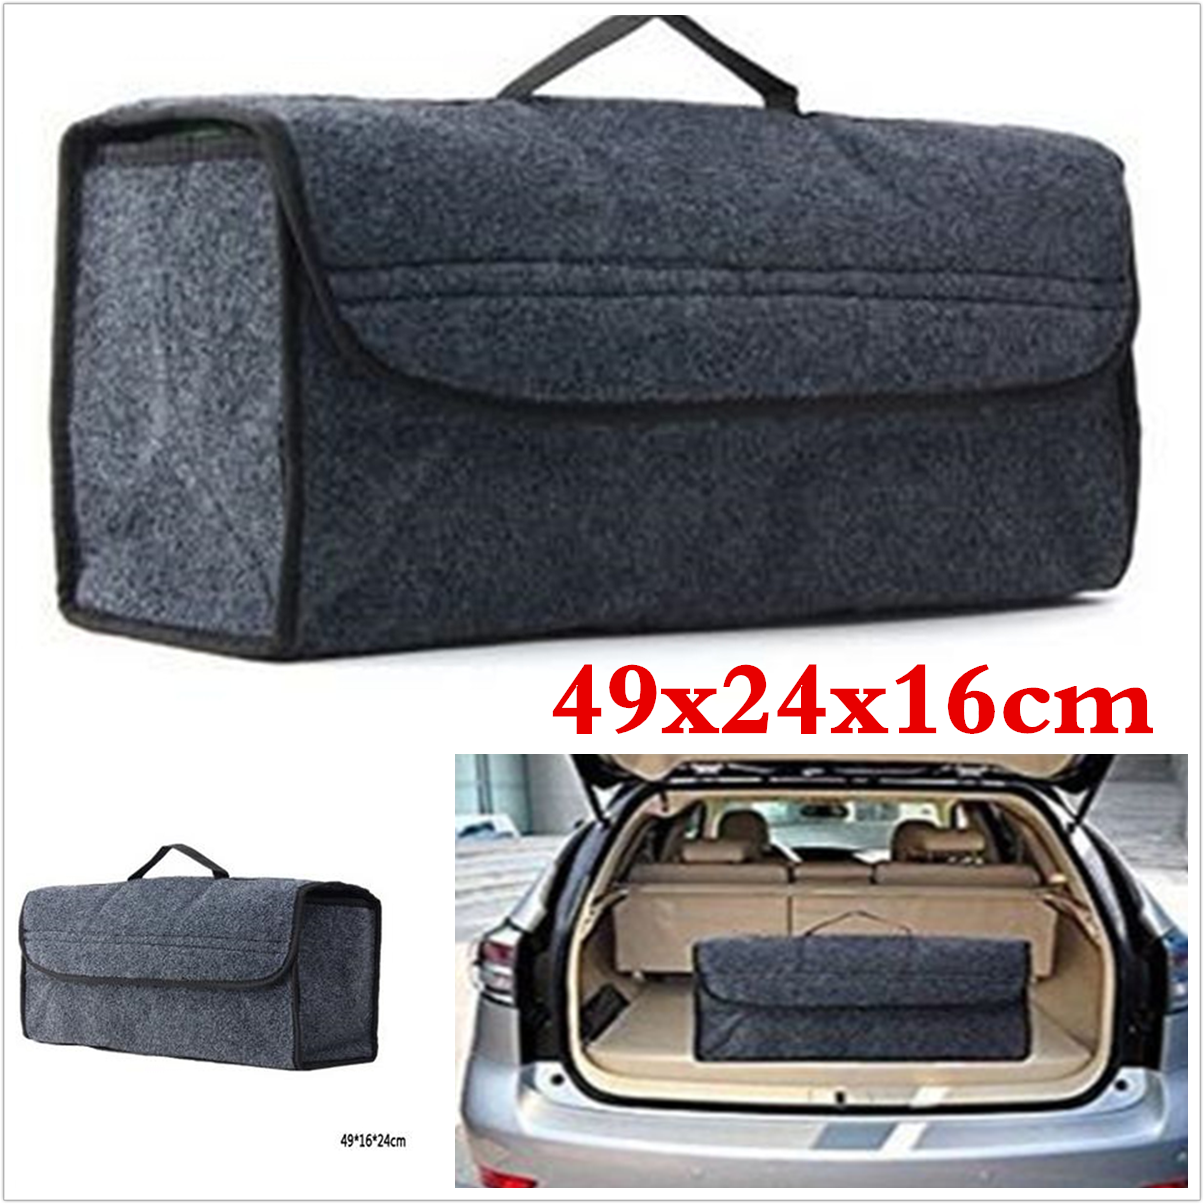 Suv Cargo Organizer >> Amazing Car Trunk Suv Cargo Organizer Foldable Collapsible Multipurpose Storage Box Bag 2017 2018